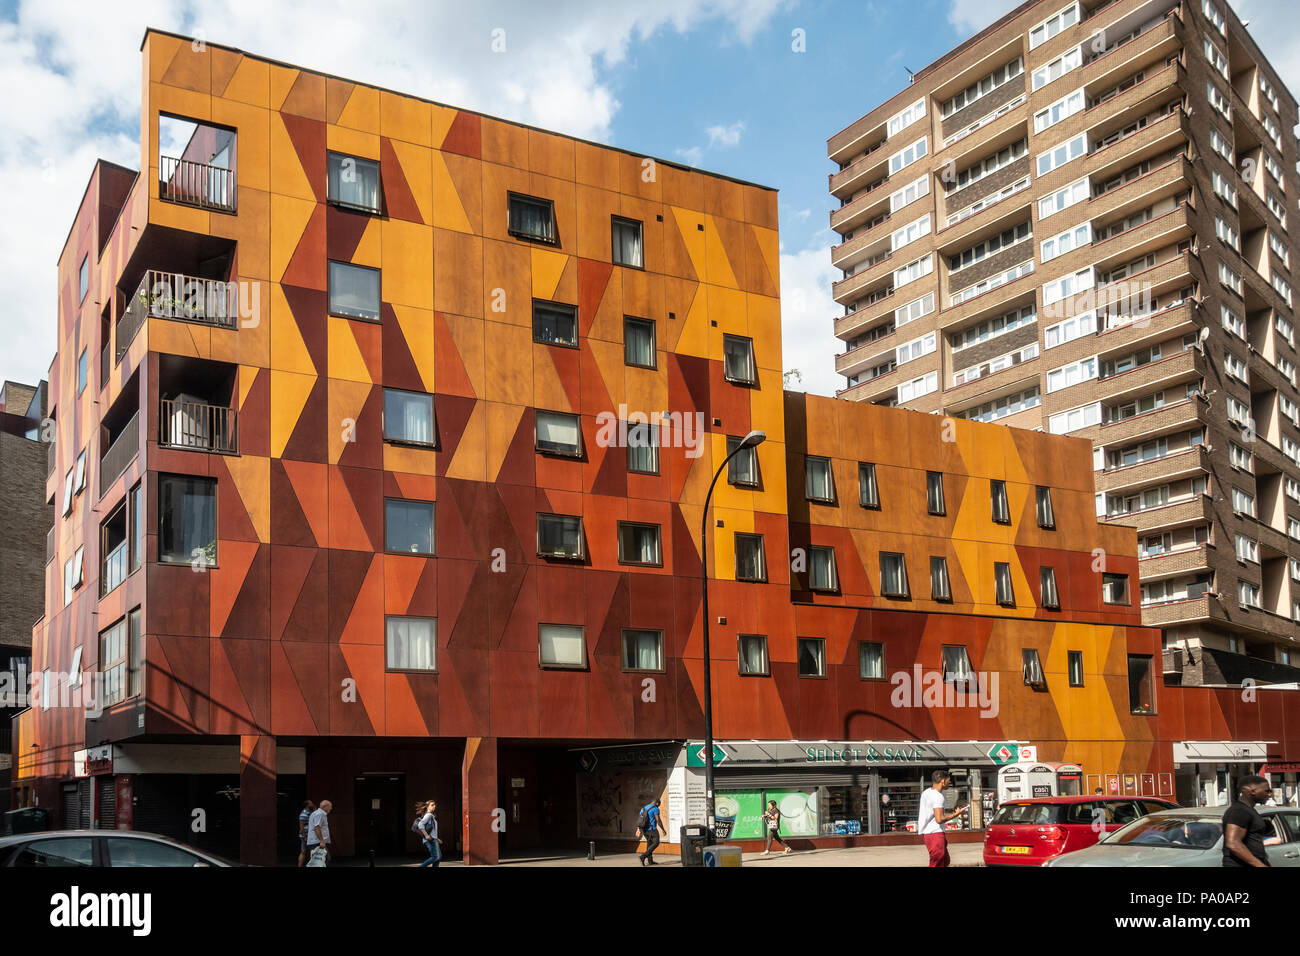 Blocks of flats of different designs in New Kent Road, Elephant and Castle, Southwark, London. Select and Save convenience store. - Stock Image